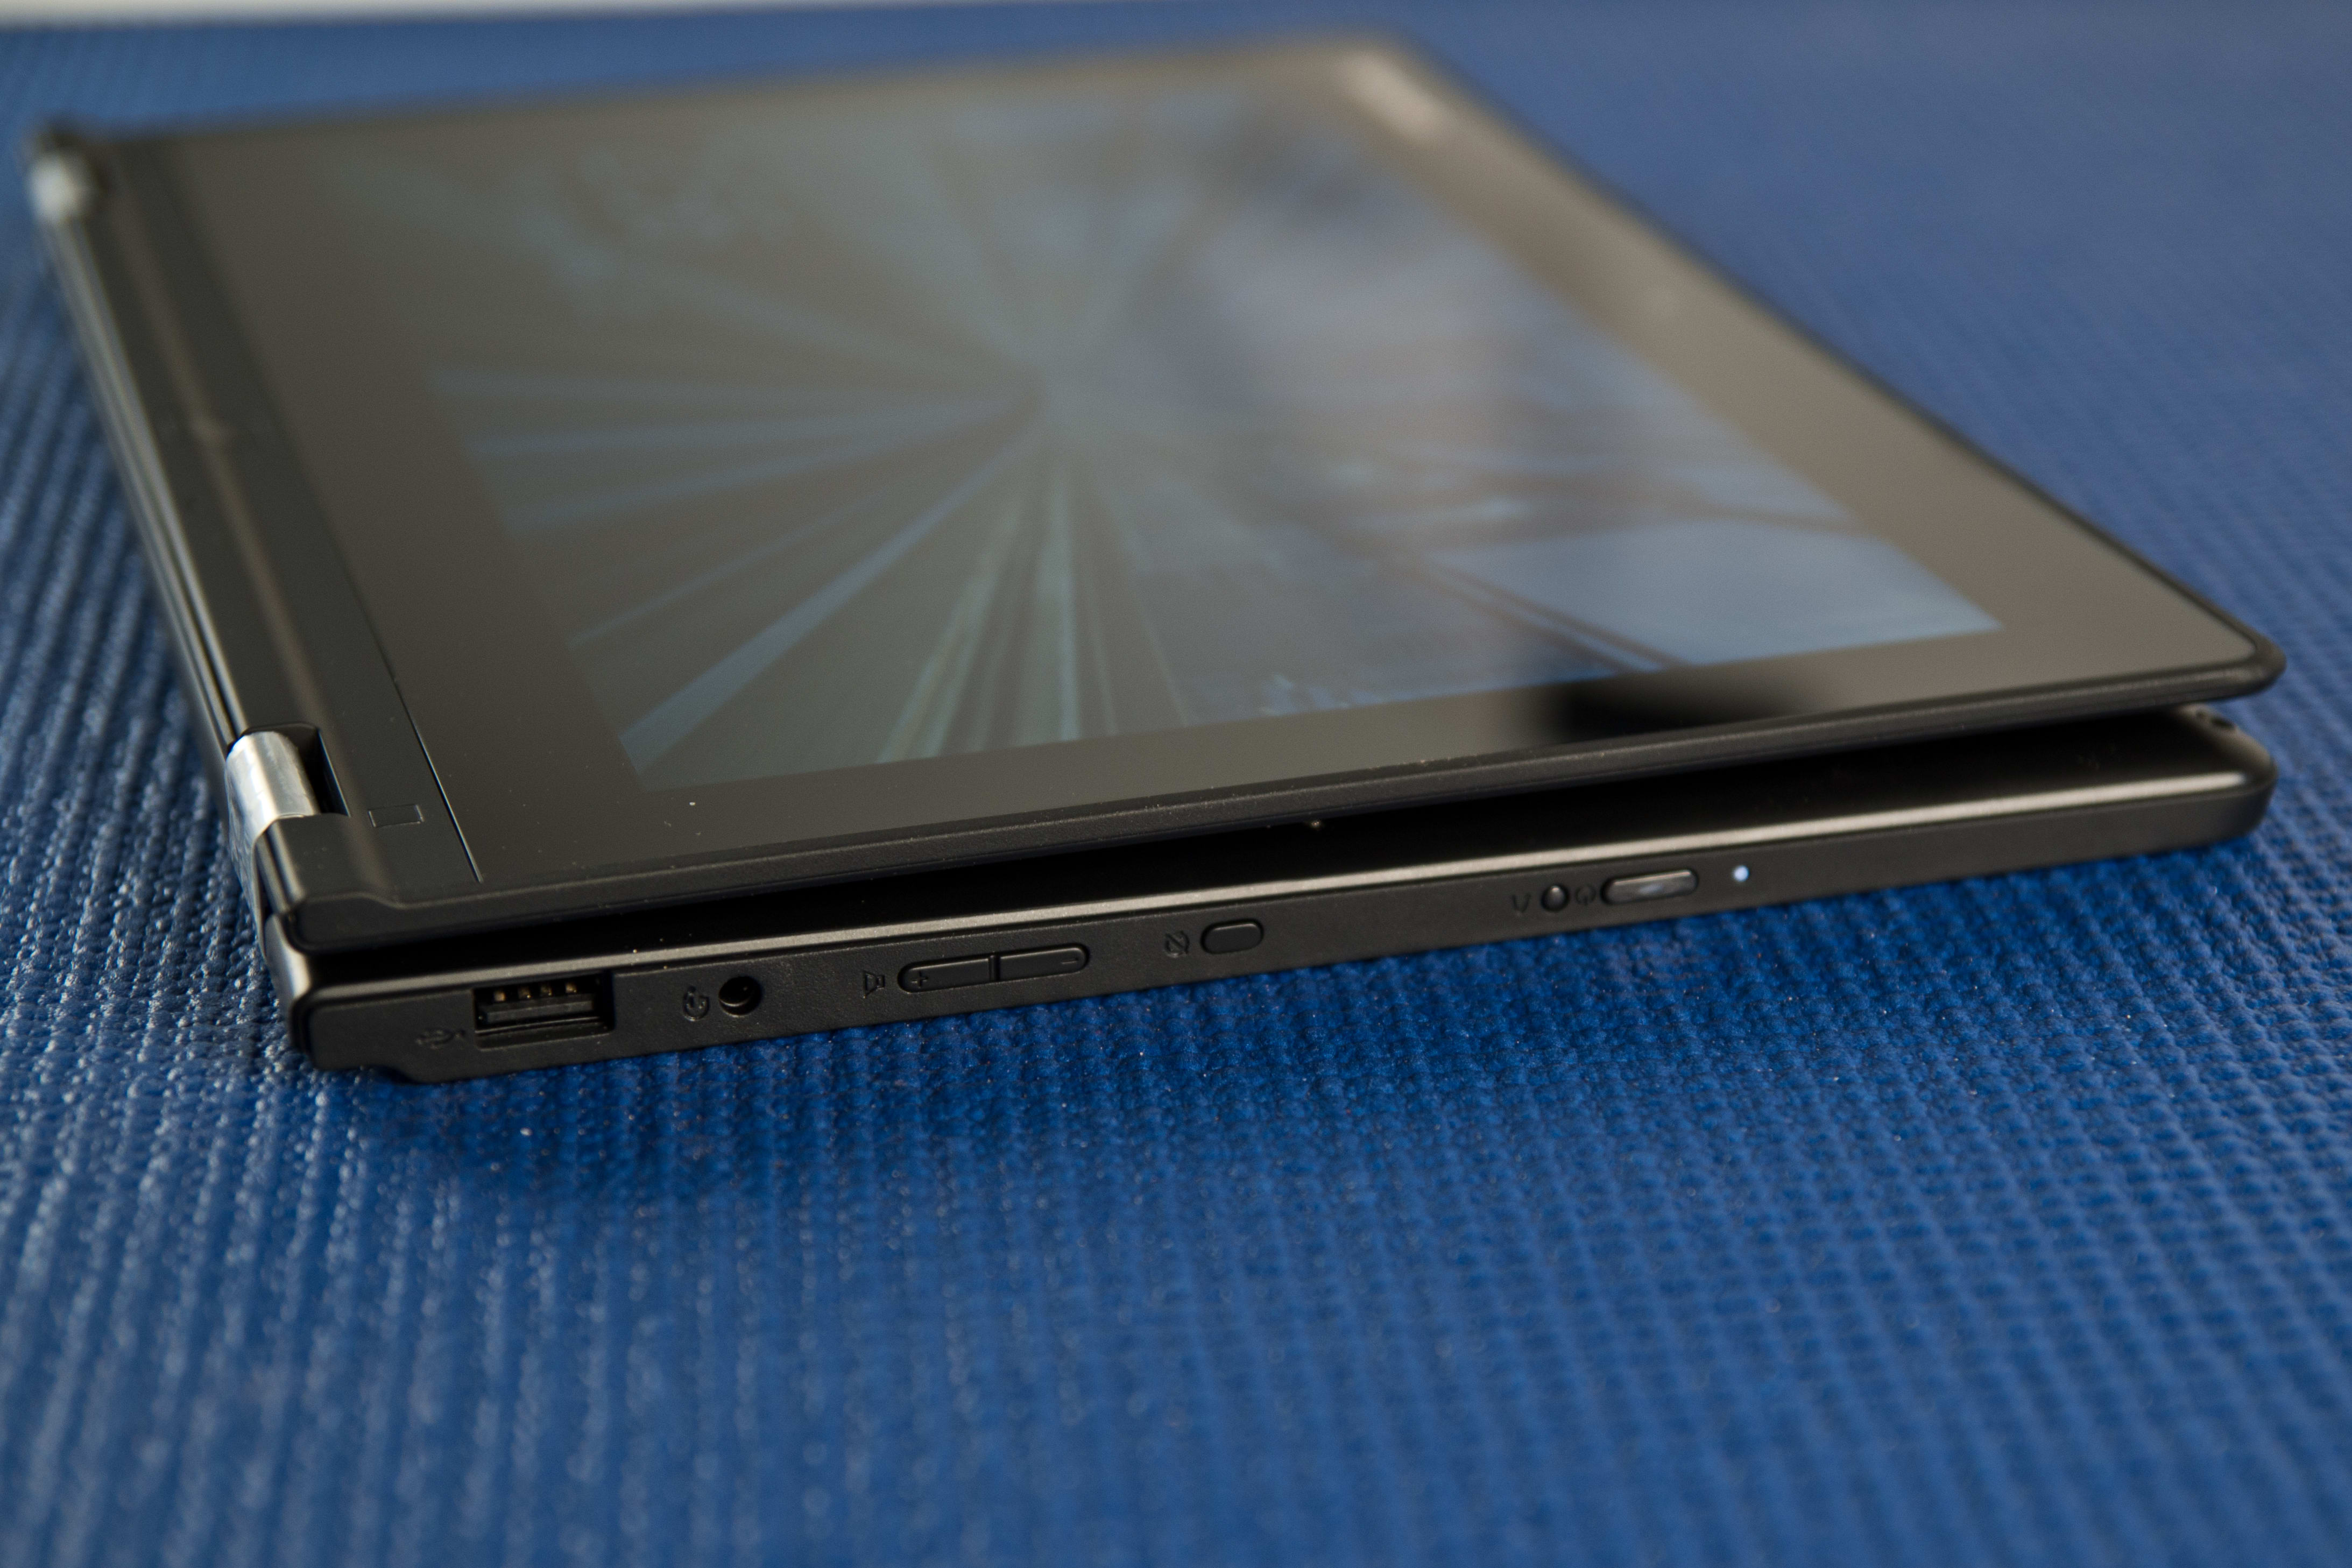 A picture of the Lenovo Yoga 2 11's buttons.